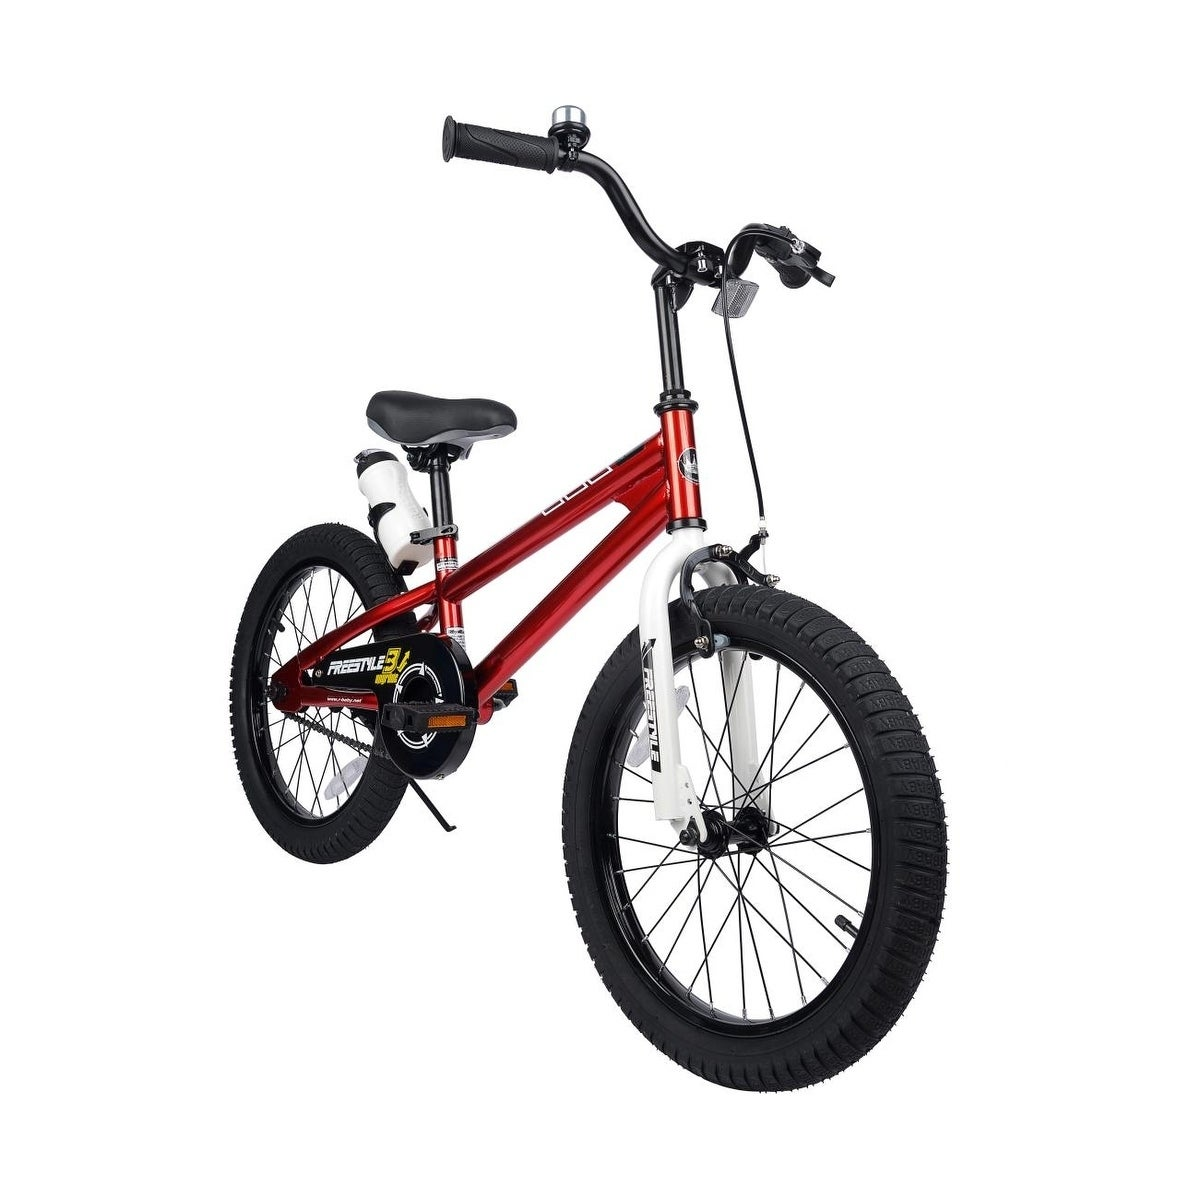 e6dfff8c260 Shop RoyalBaby BMX Freestyle 18-inch Kids' Bike with Training Wheels - Free  Shipping Today - Overstock - 9821985